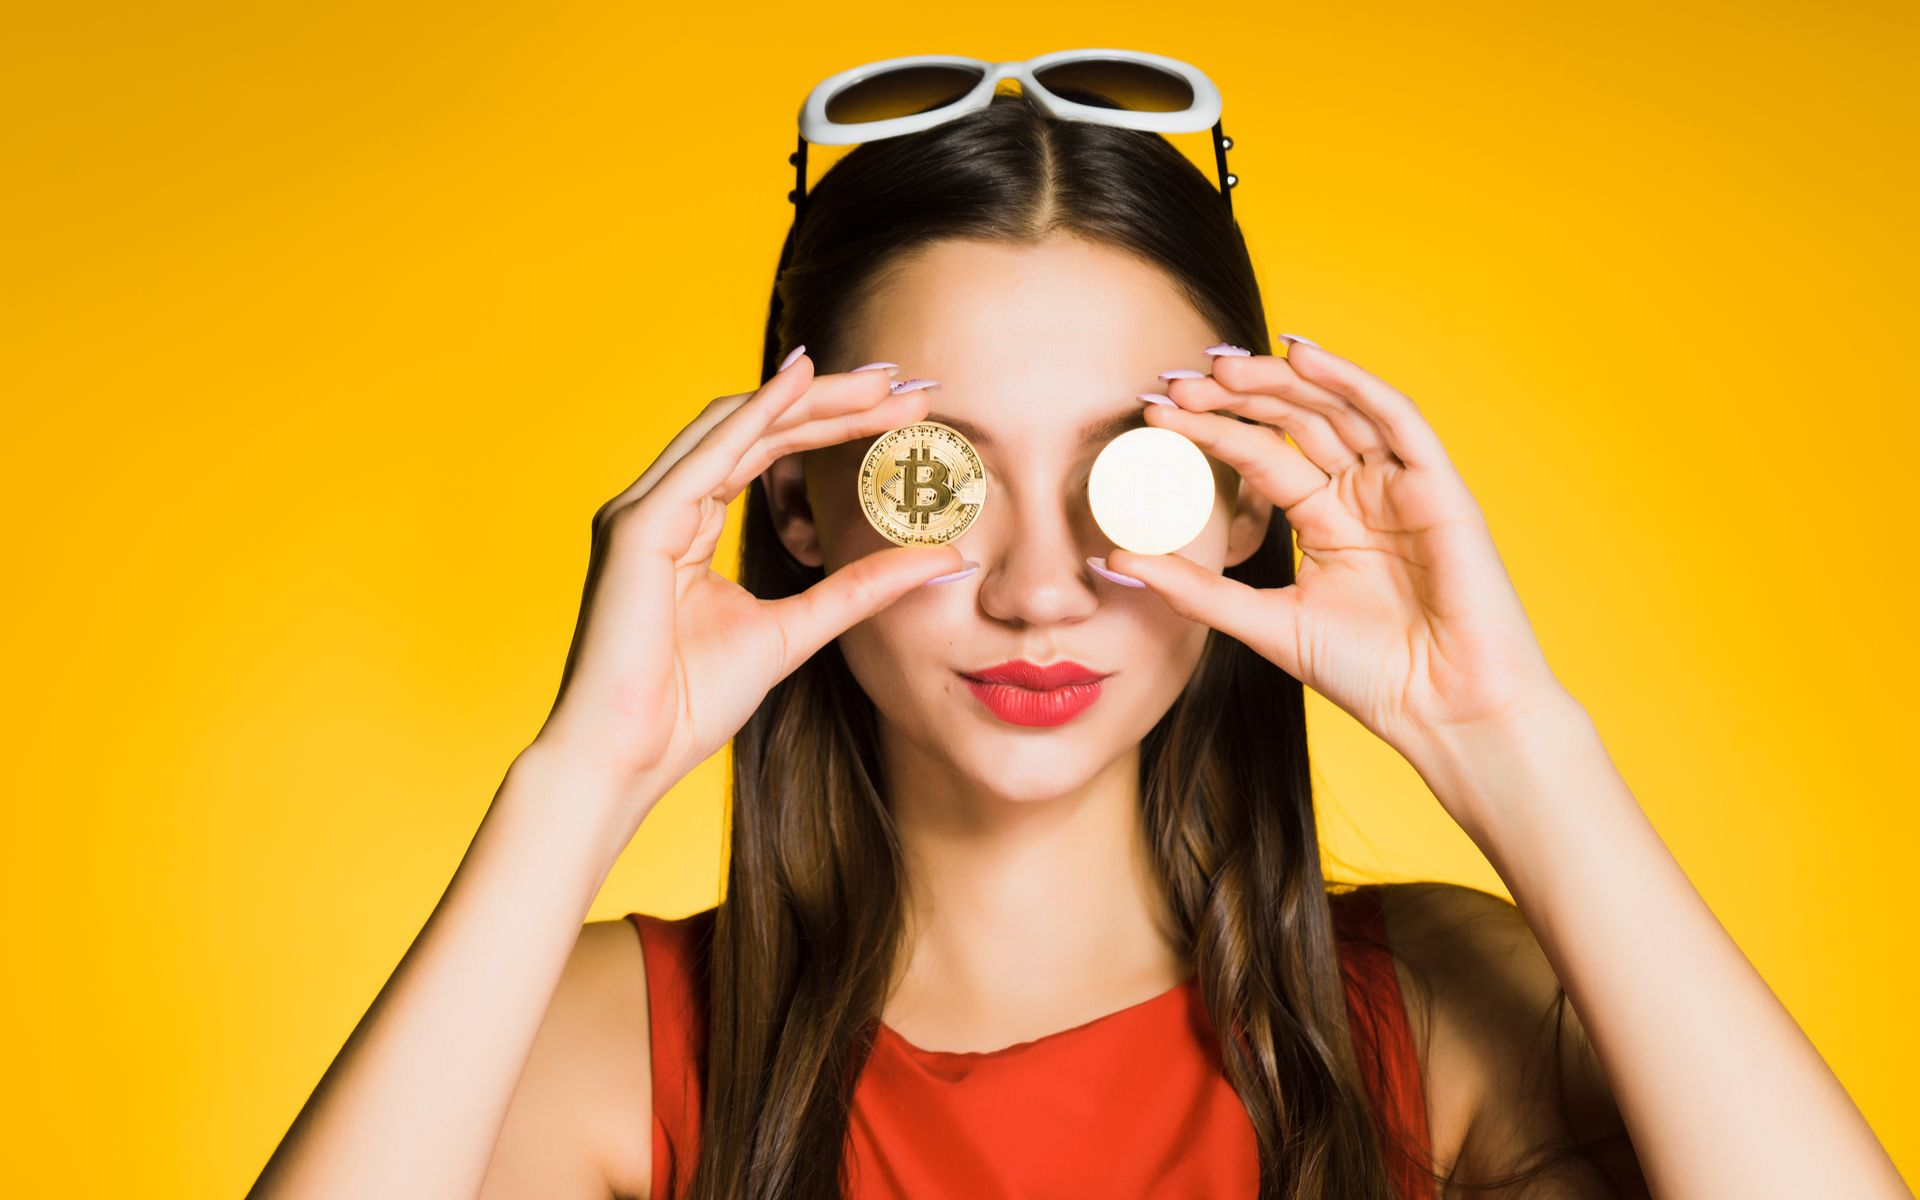 /financial-freedom-attracts-women-to-crypto-ca1x37me feature image